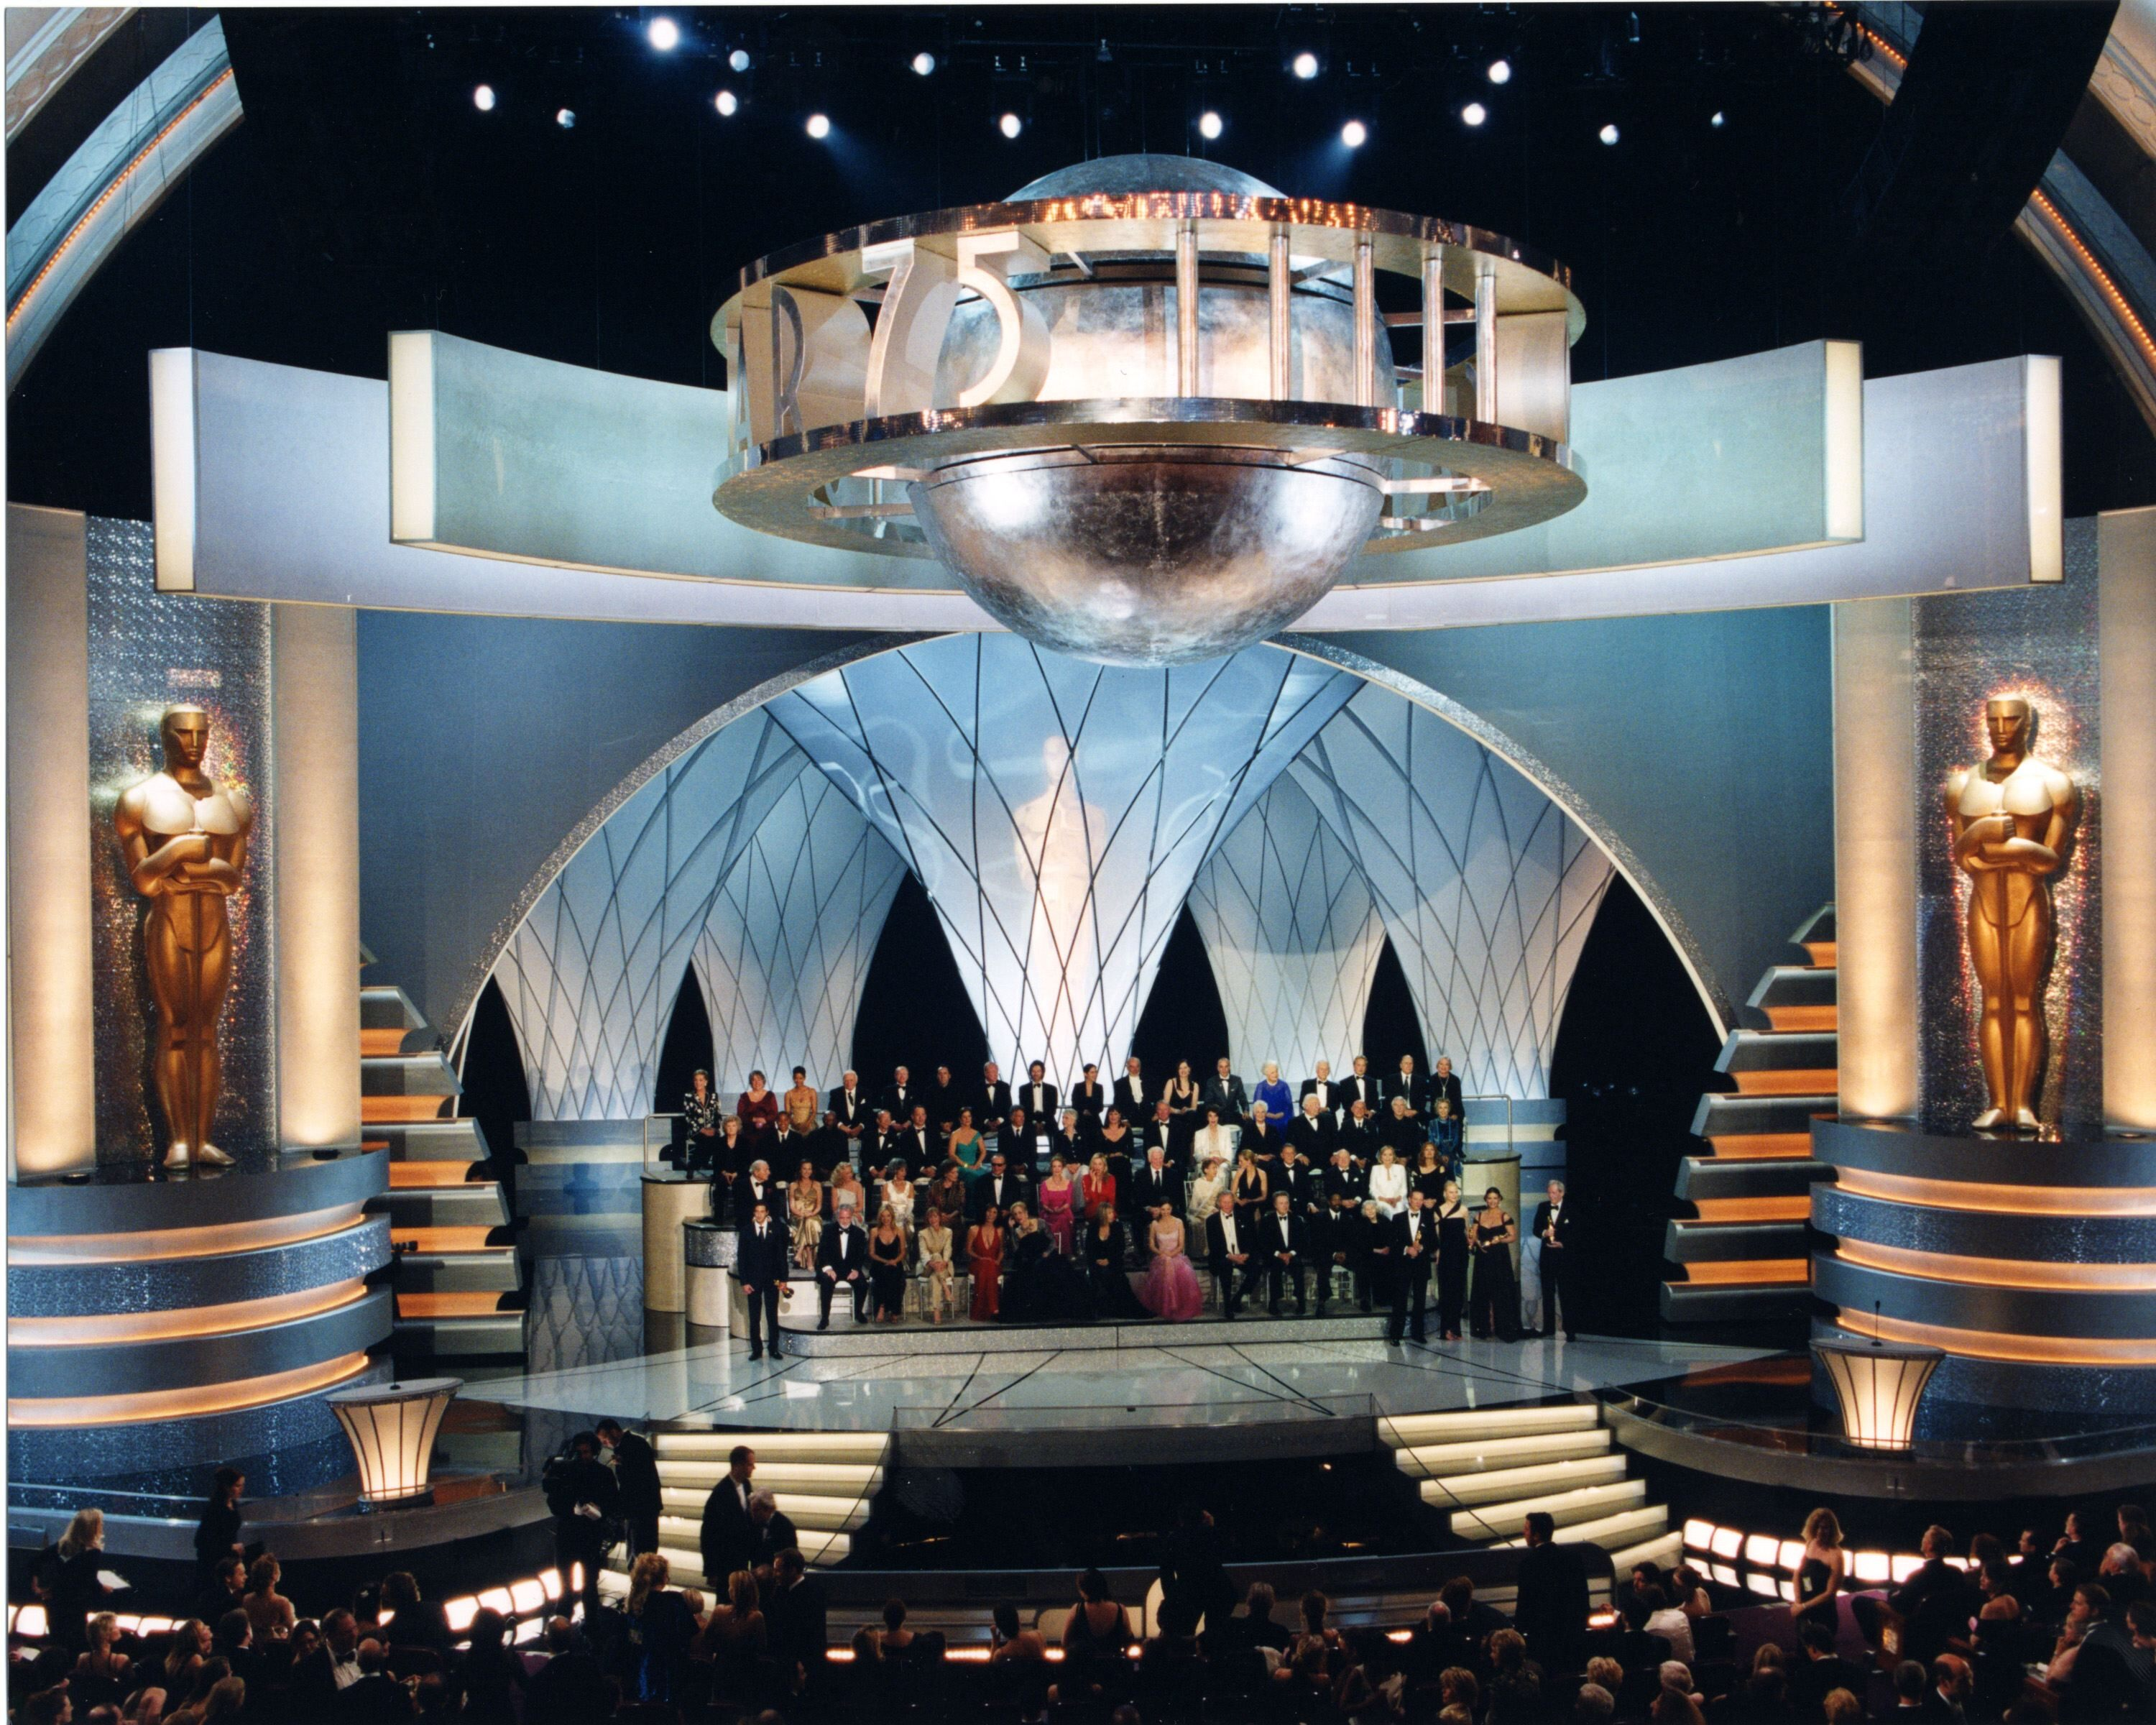 Winners of Best Actor and Actress awards through the years gather on stage for the 75th Academy Awards.